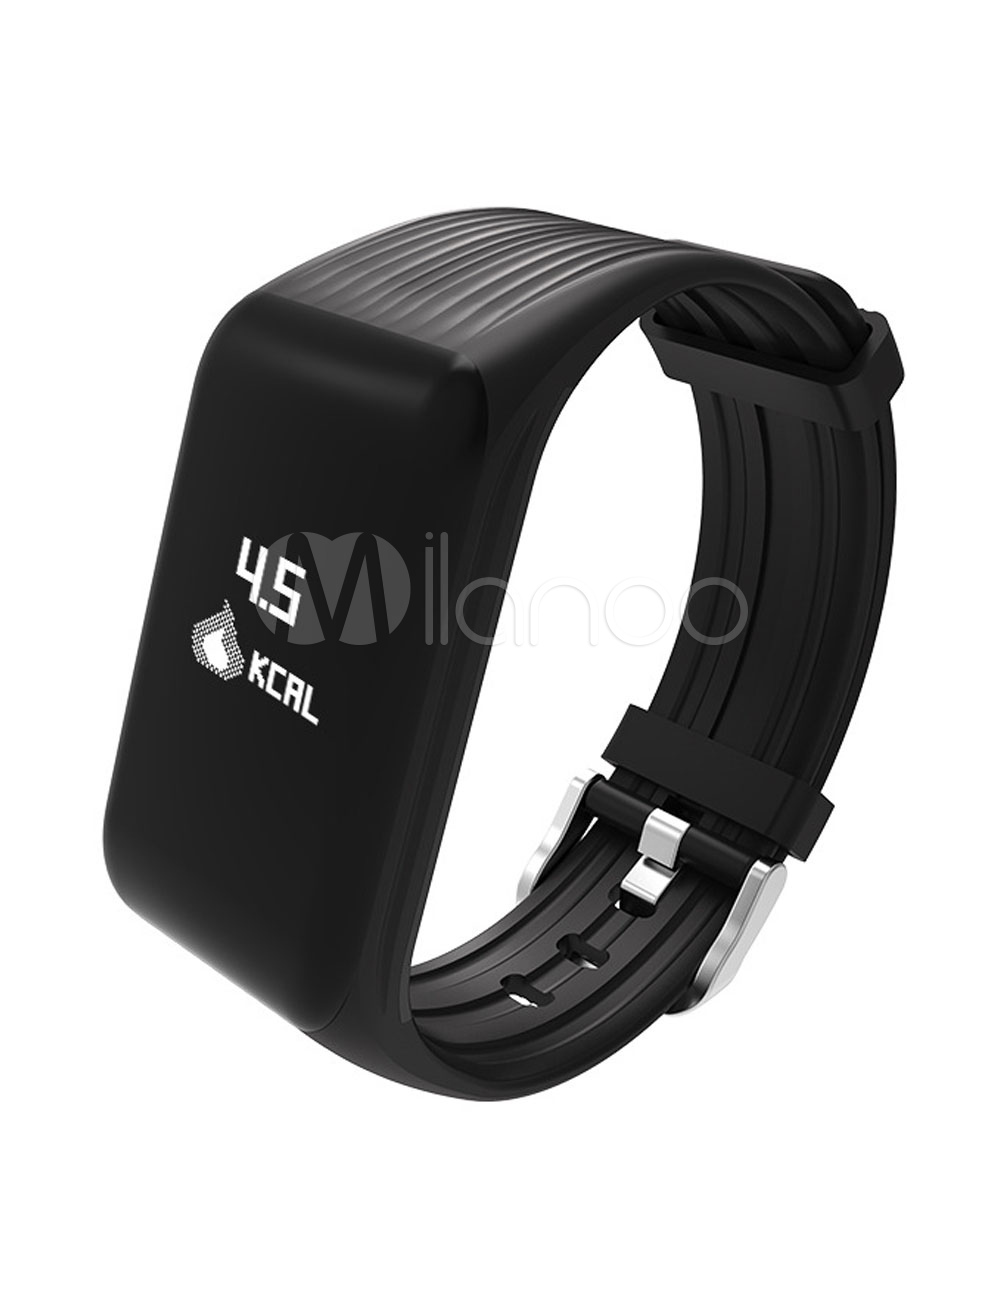 Bluetooth Smart Watch LCD Display Phone Call Reminder Waterproof Screen Touch Fitness Smart Wearables